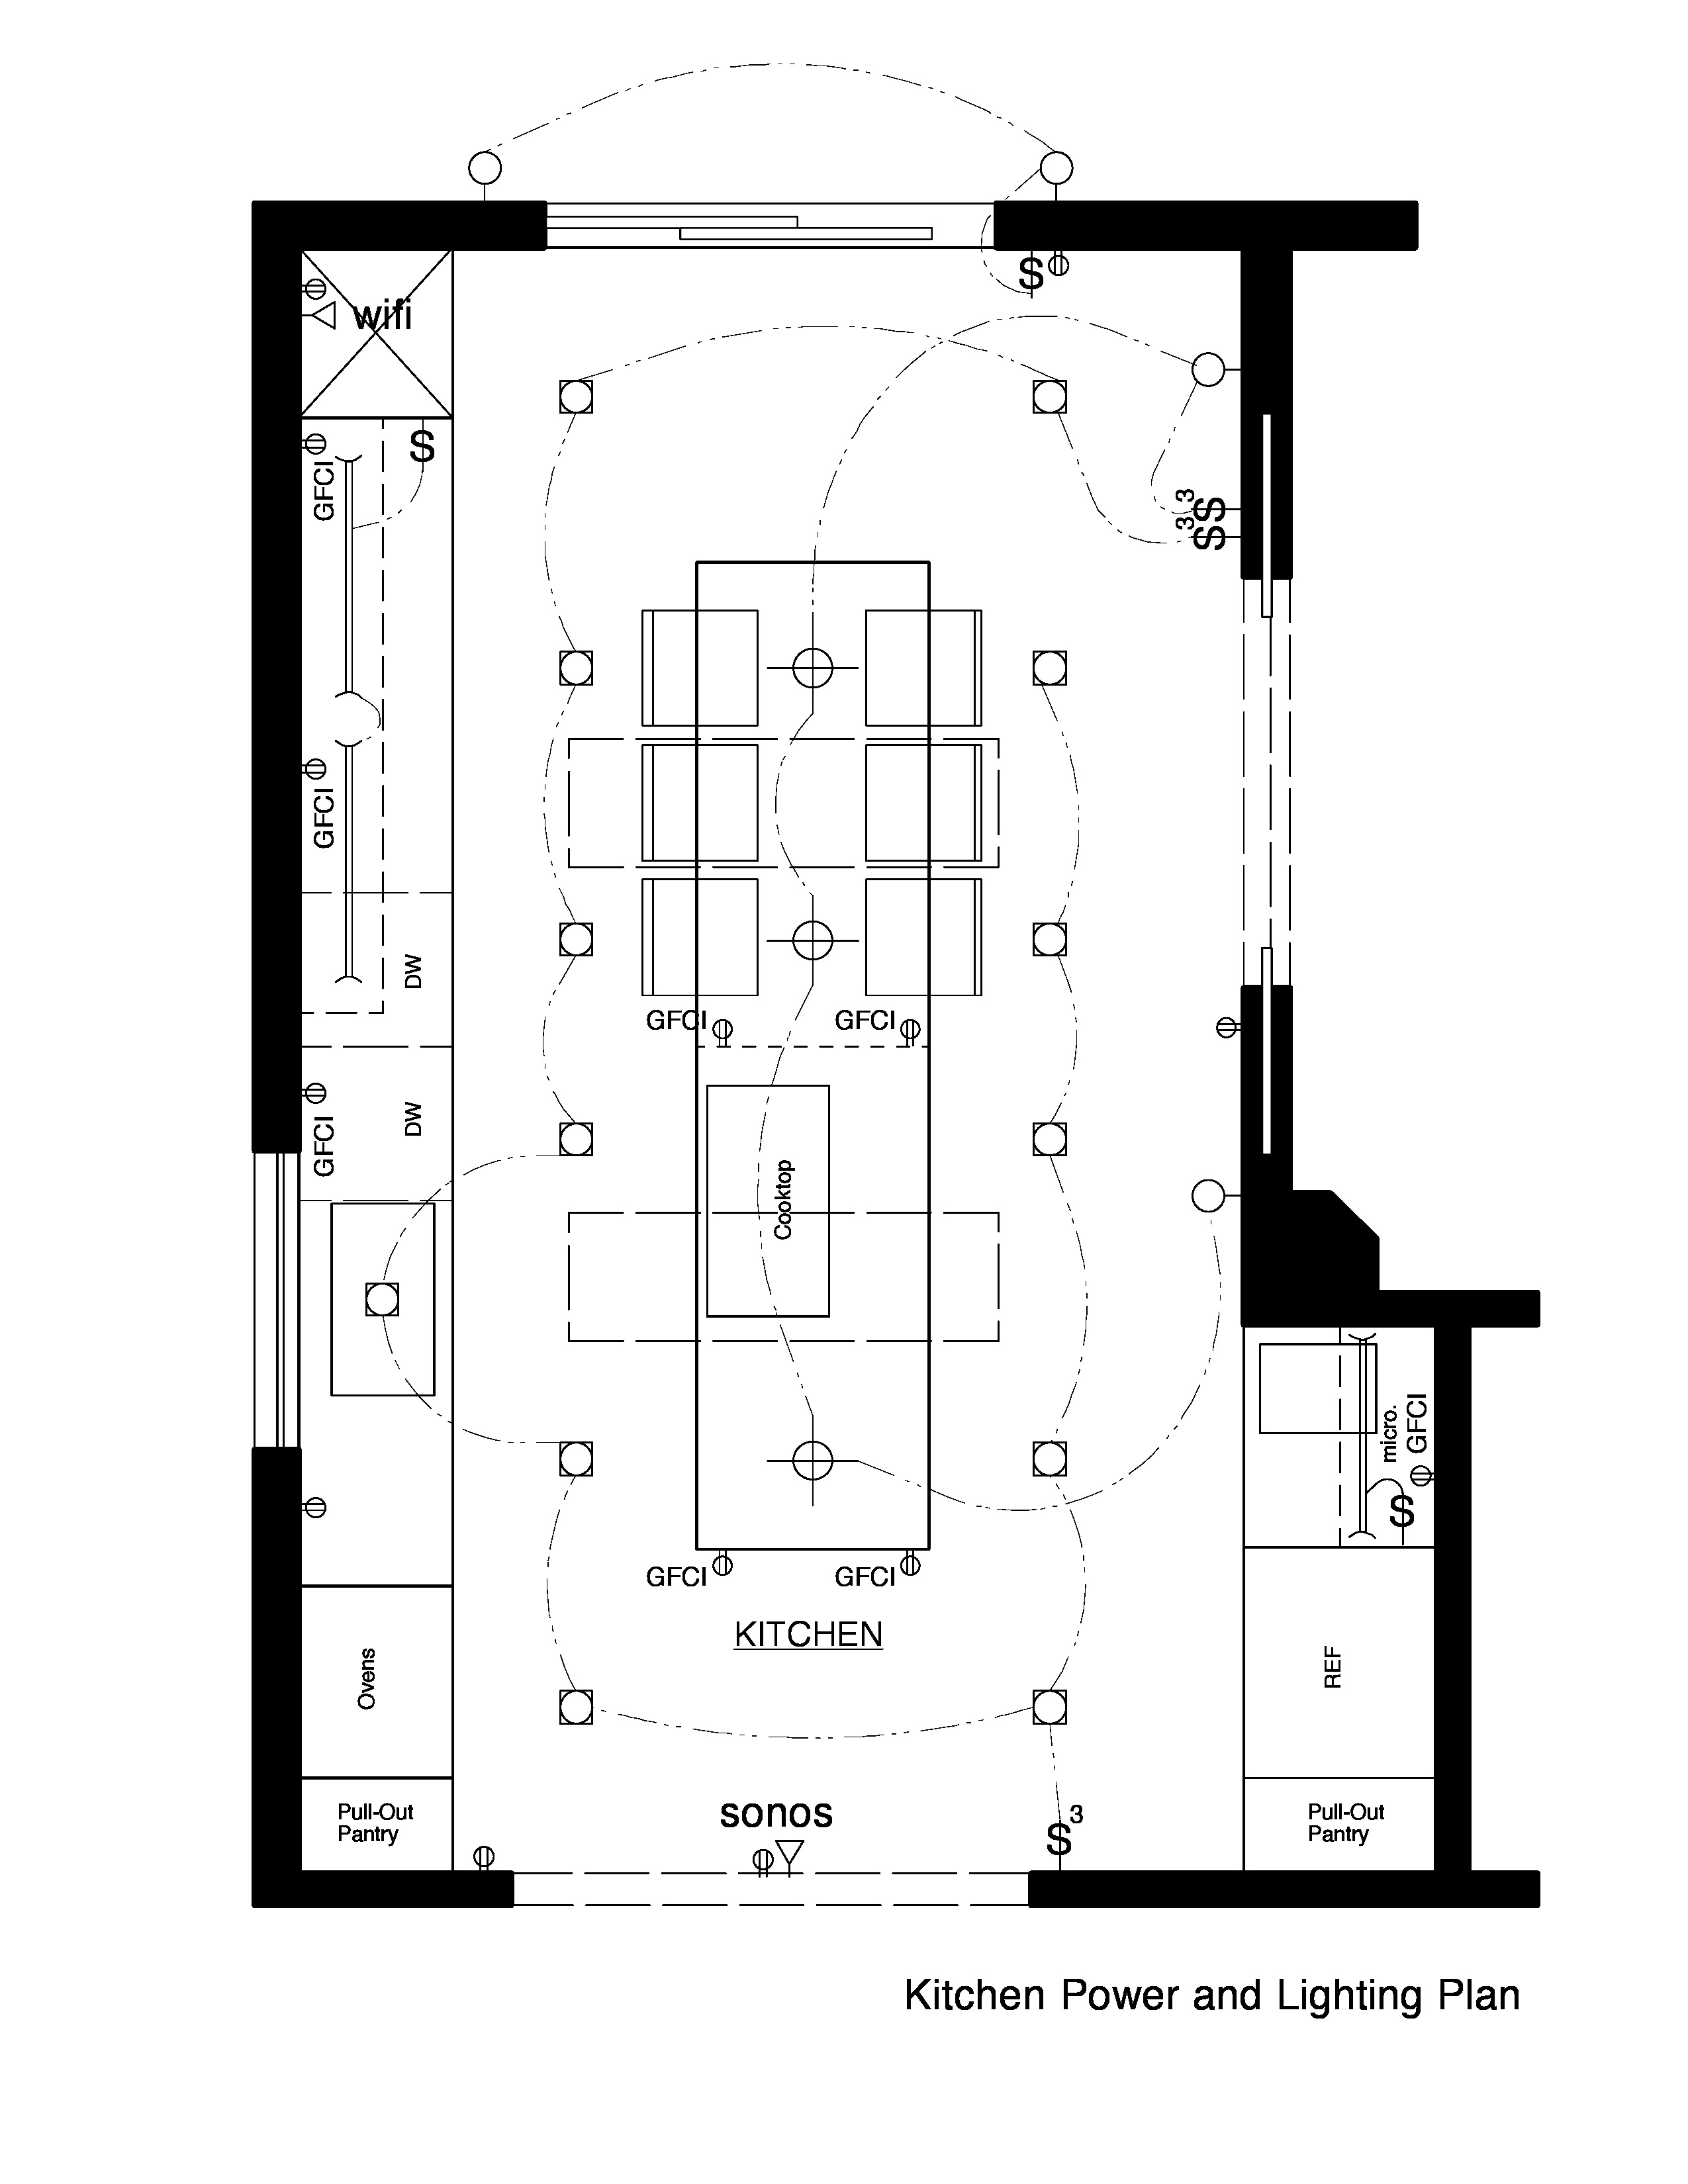 diagram 3 officer room lighting layout